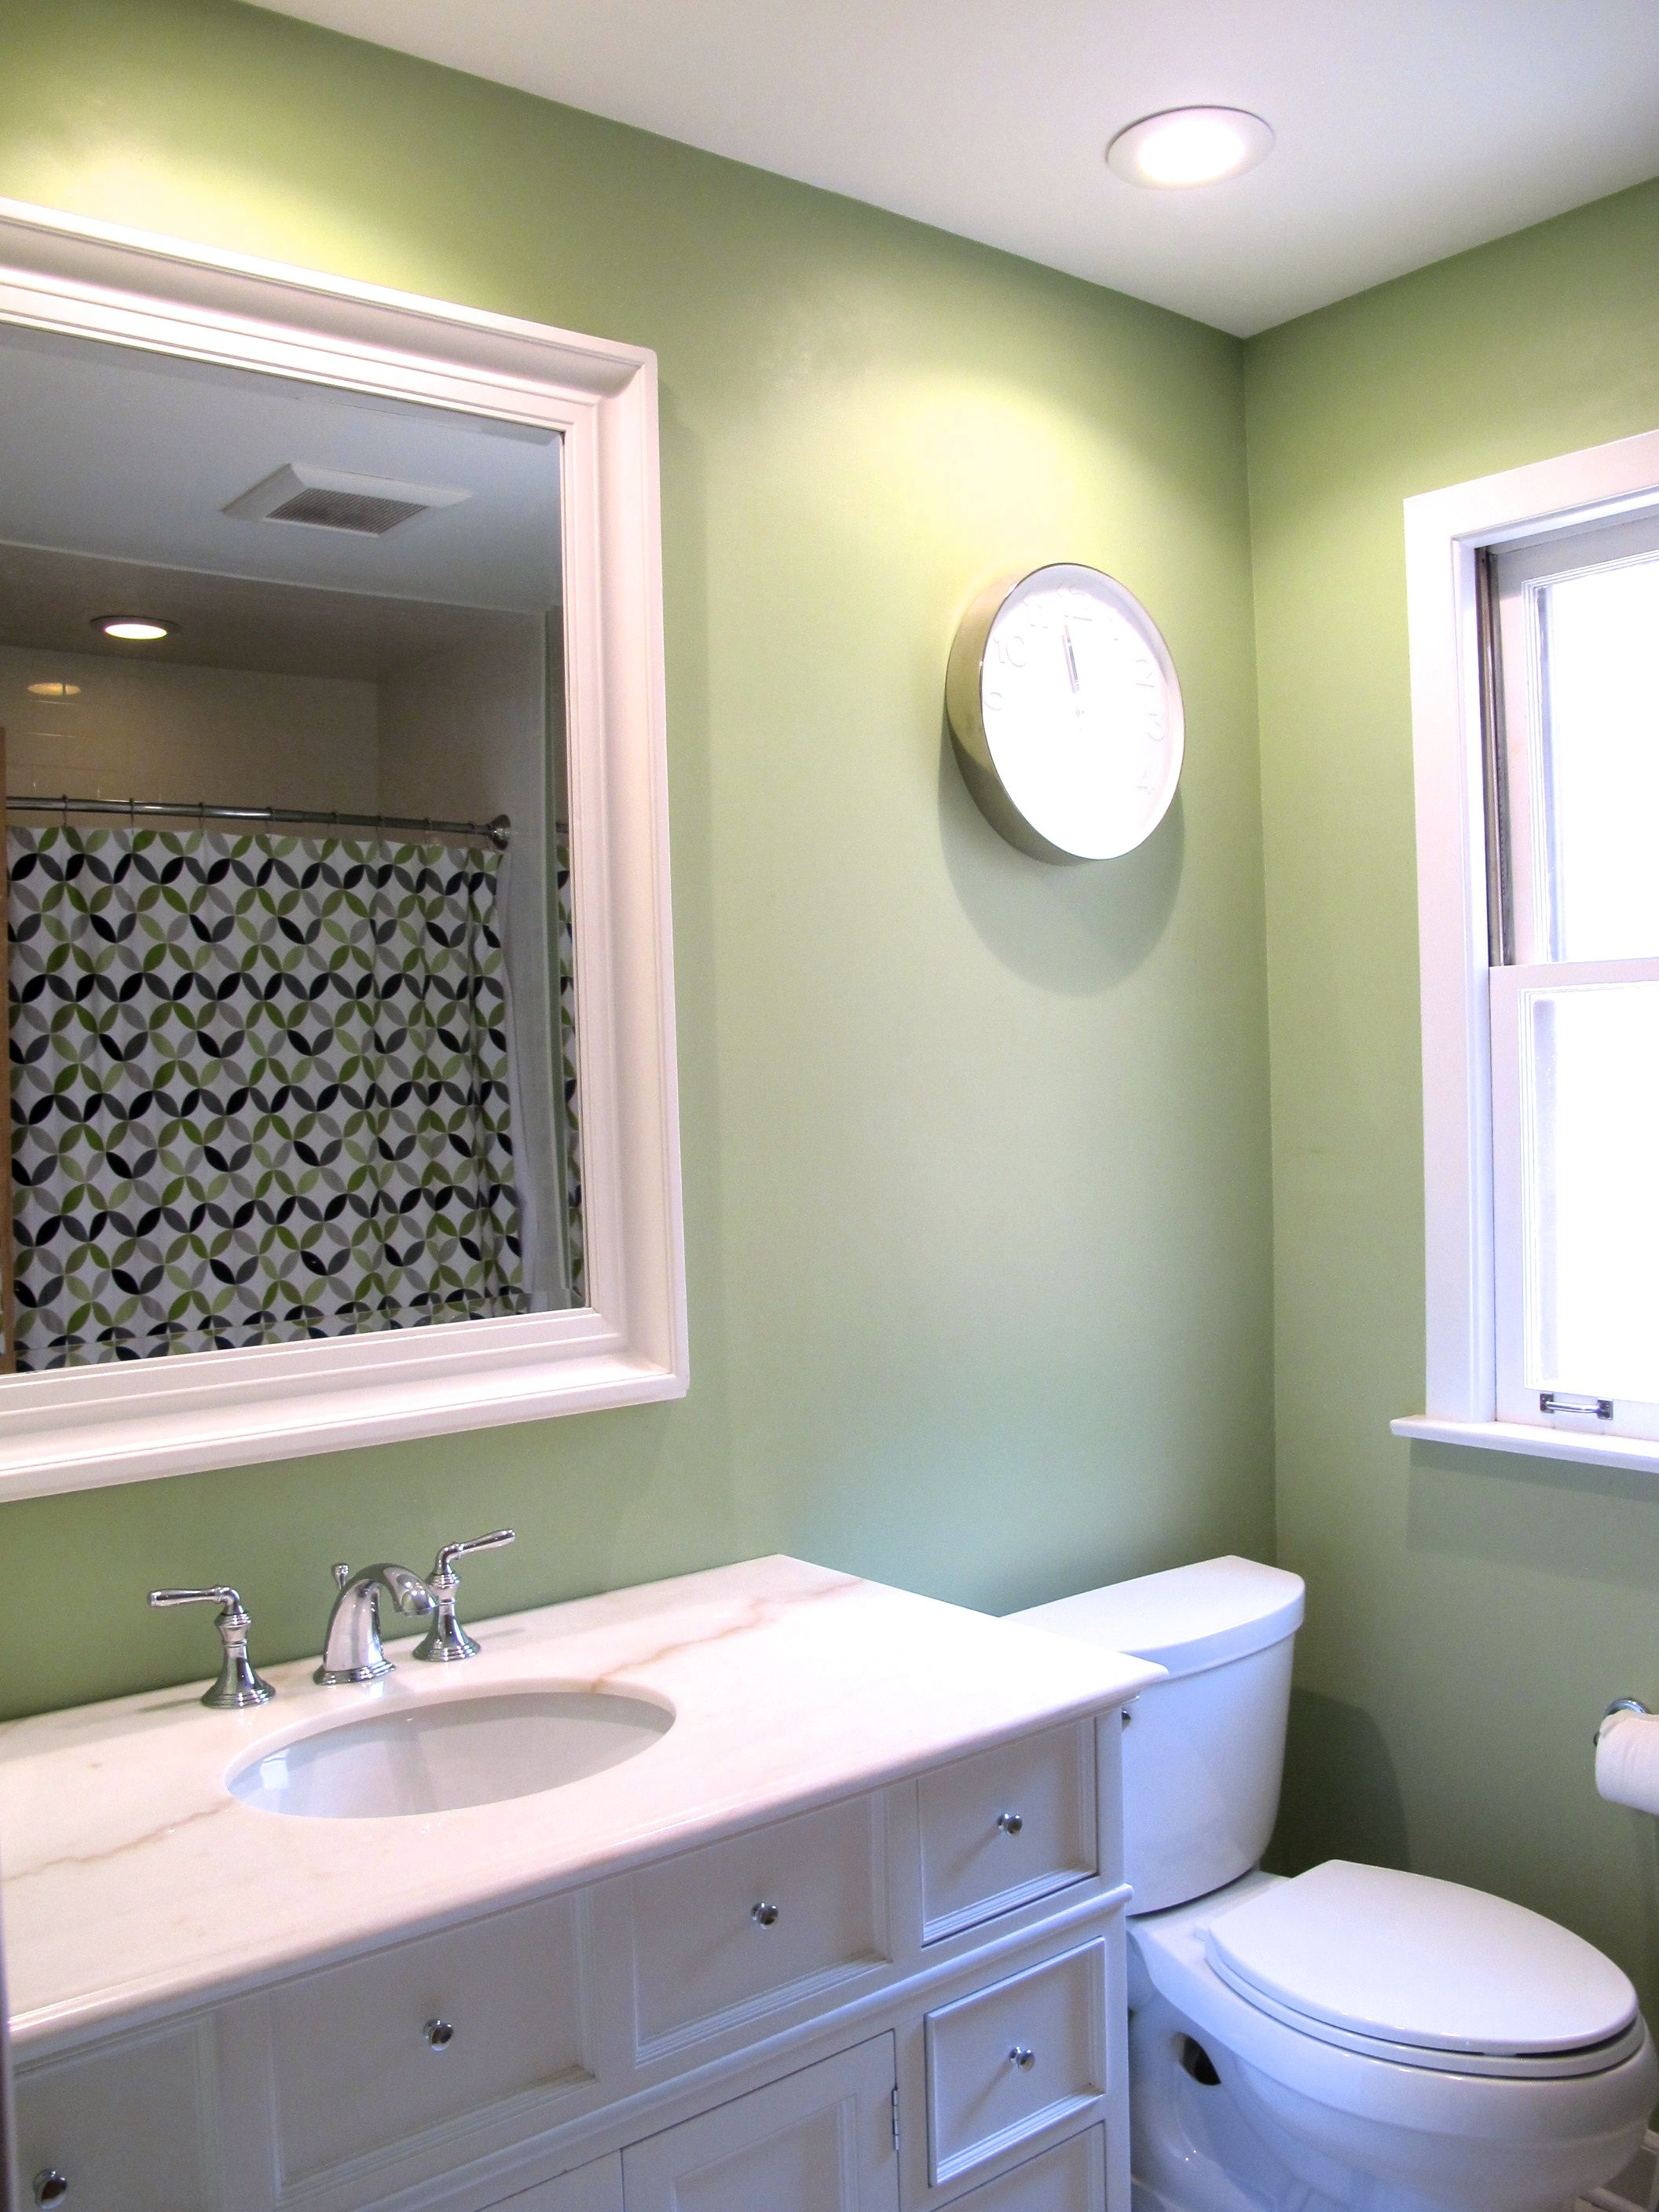 Crabtree Bath Sherwin Williams Recycled Glass Sherwin Williams Paint Colors Room Paint Colors Sherwin Williams Green Bathroom Paint